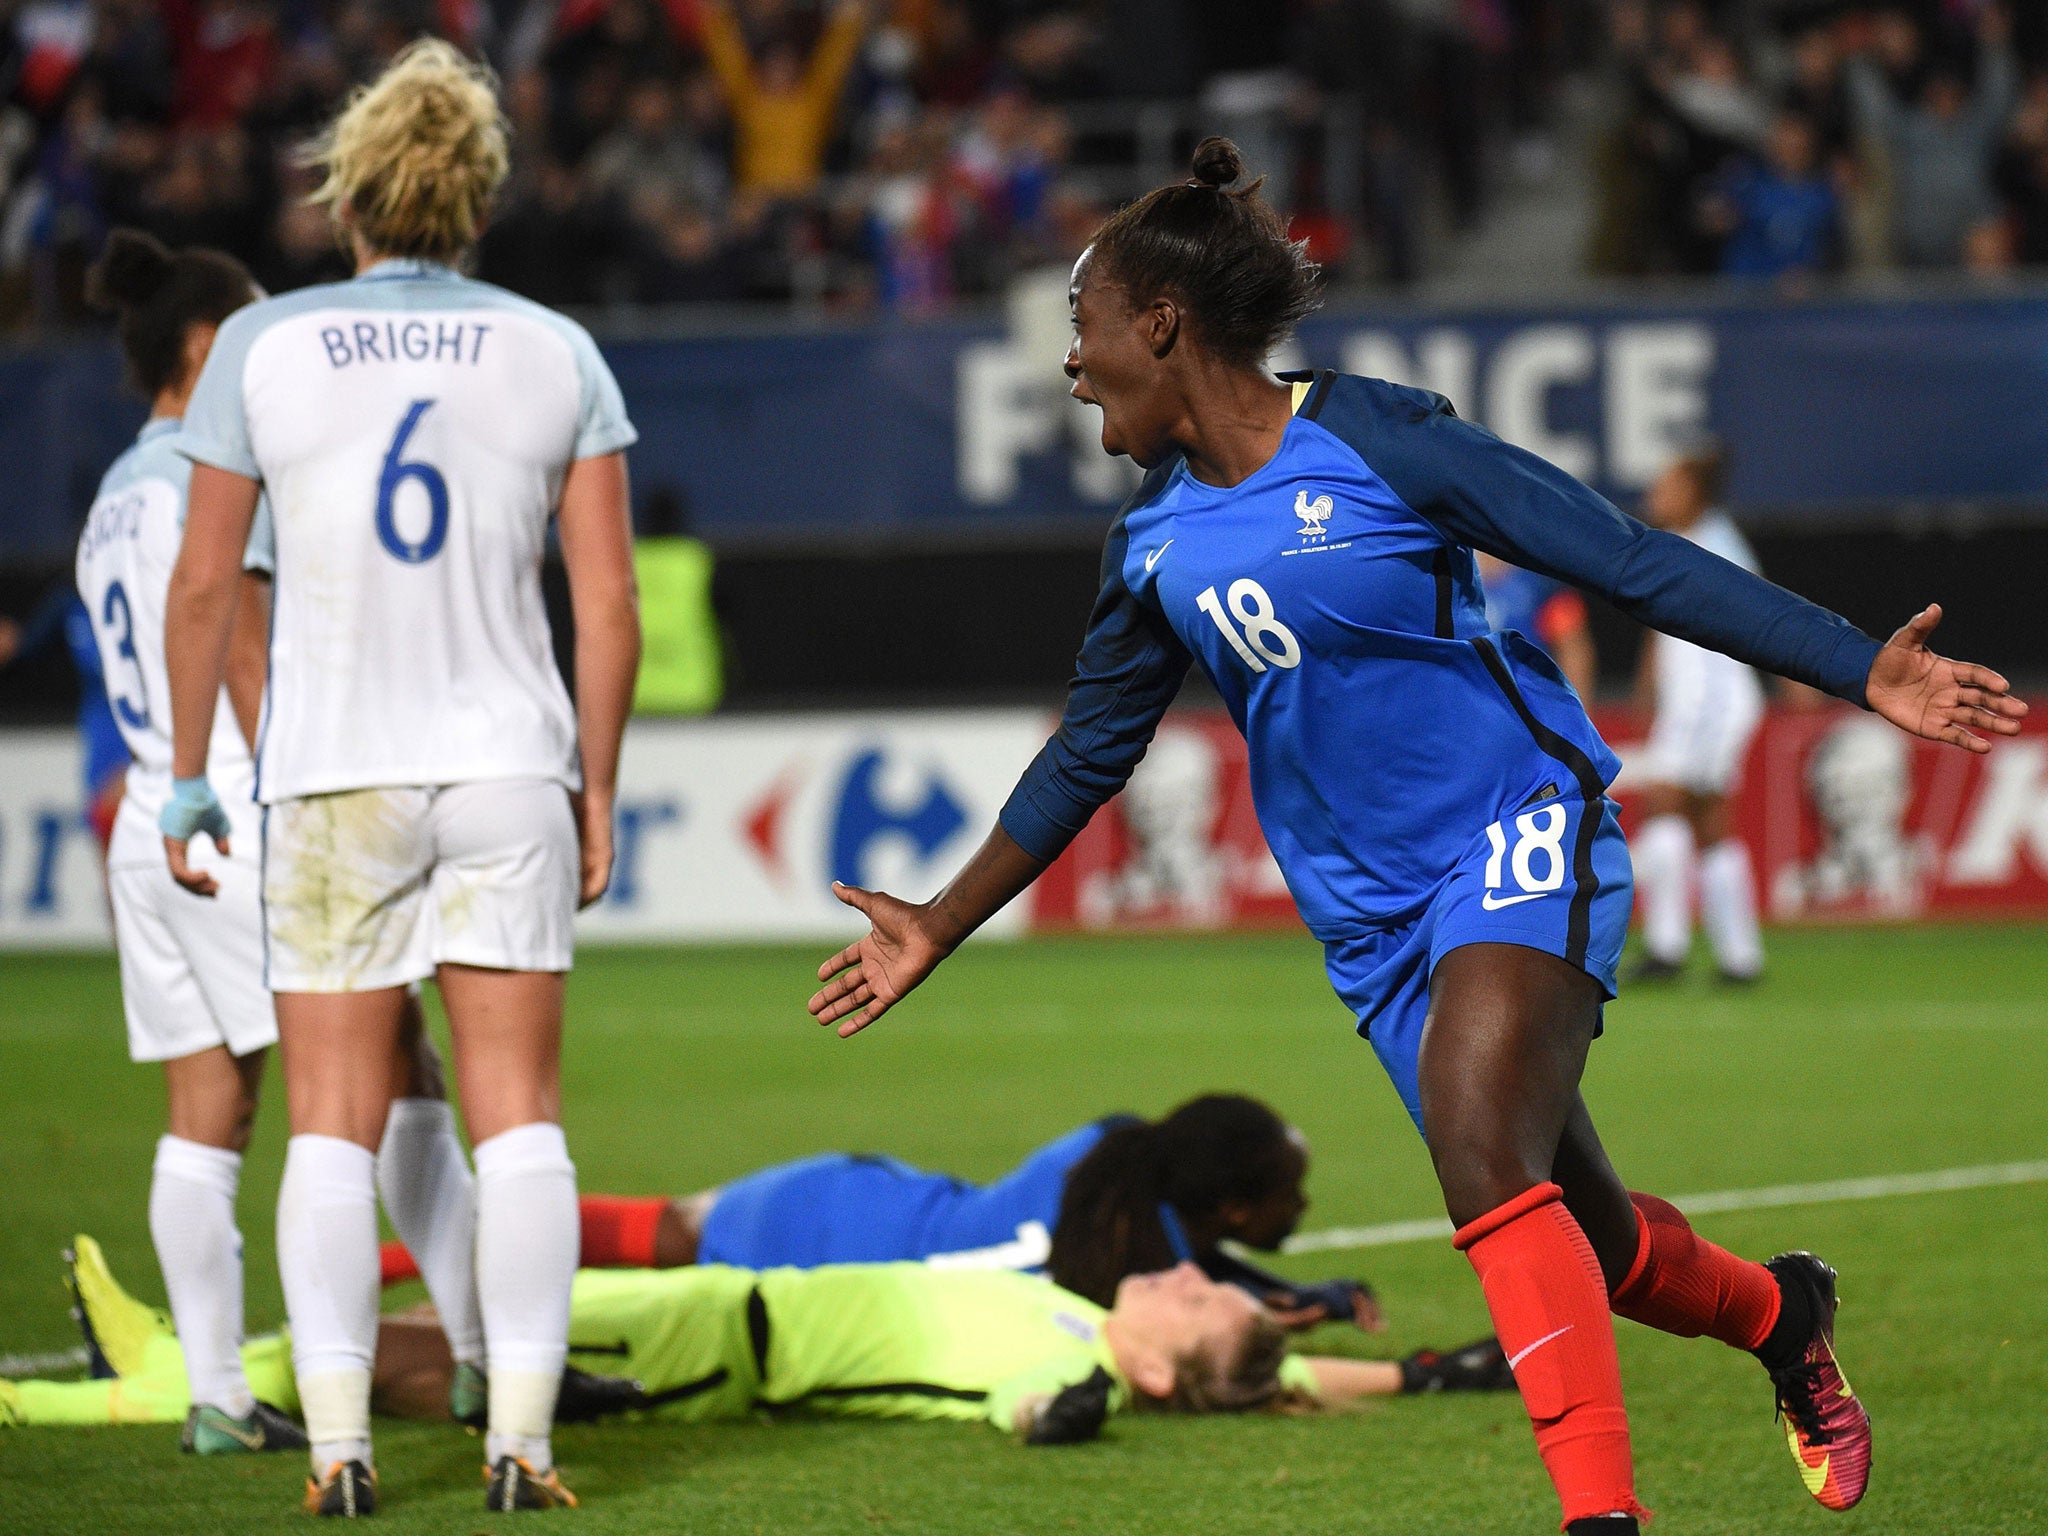 England women vs France match report: Lionesses defeated in first match since Mark Sampson's sacking